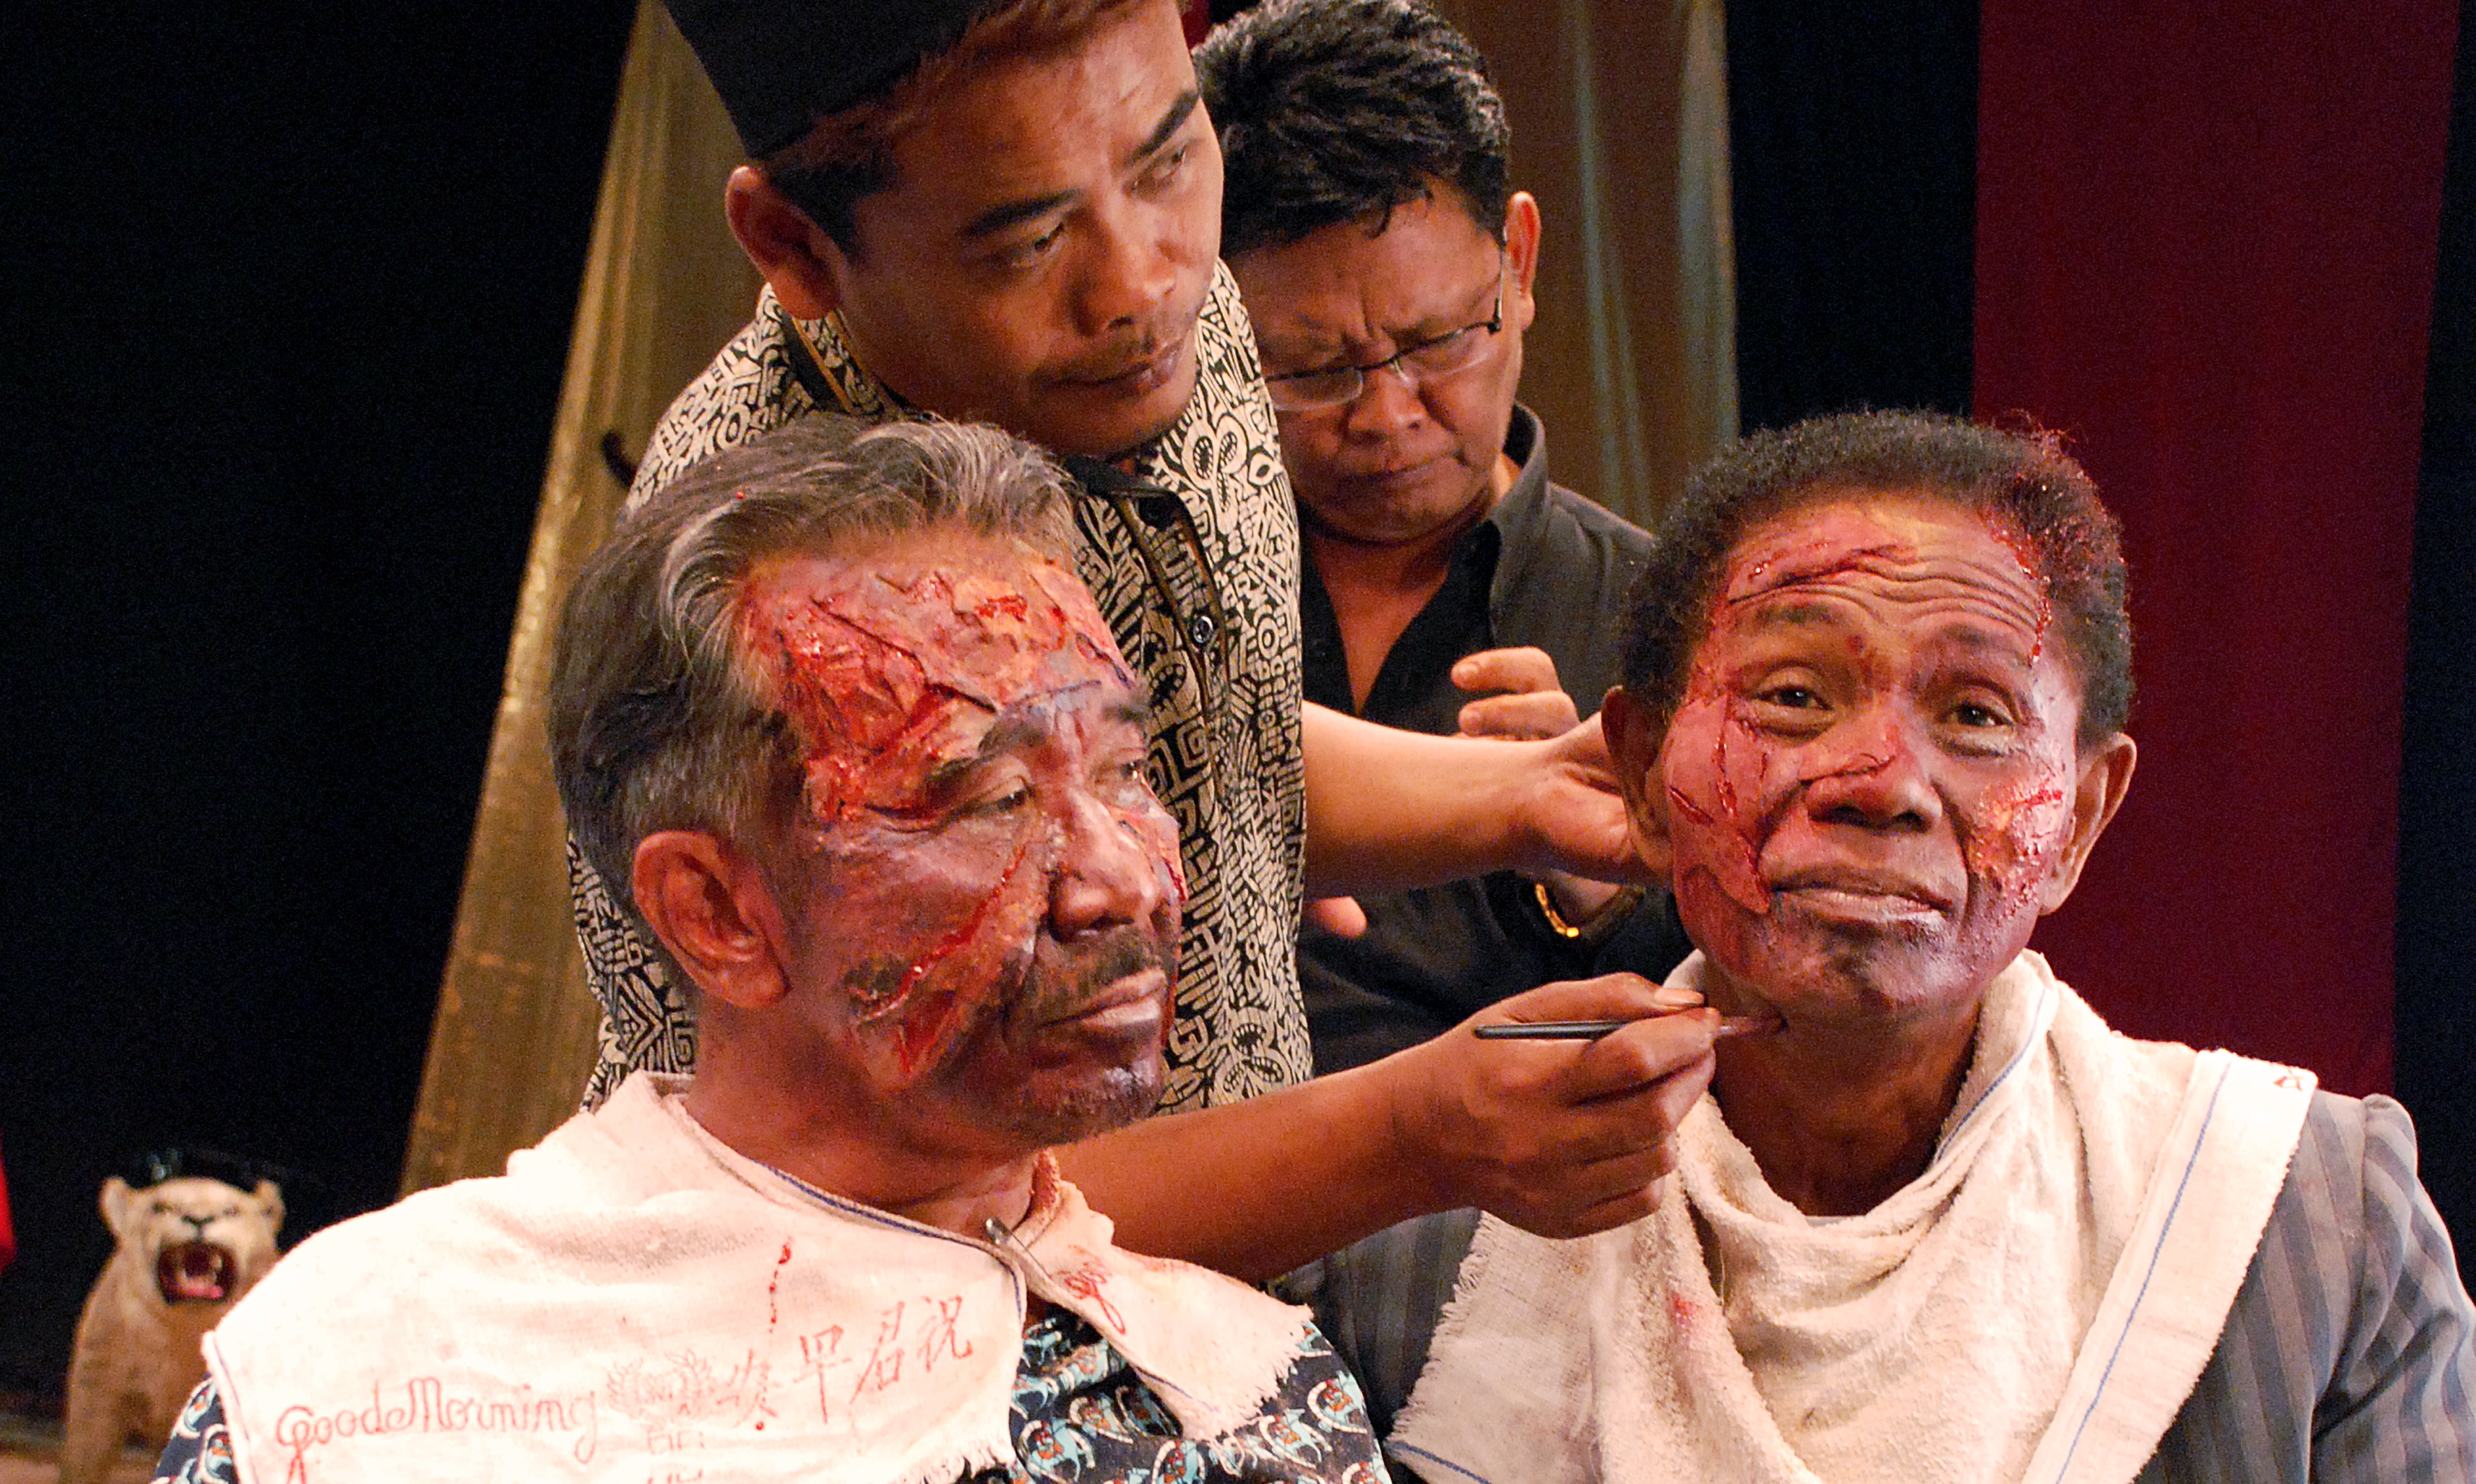 Preparing for a reenactment scene from Drafthouse Film's documentary, The Act Of Killing